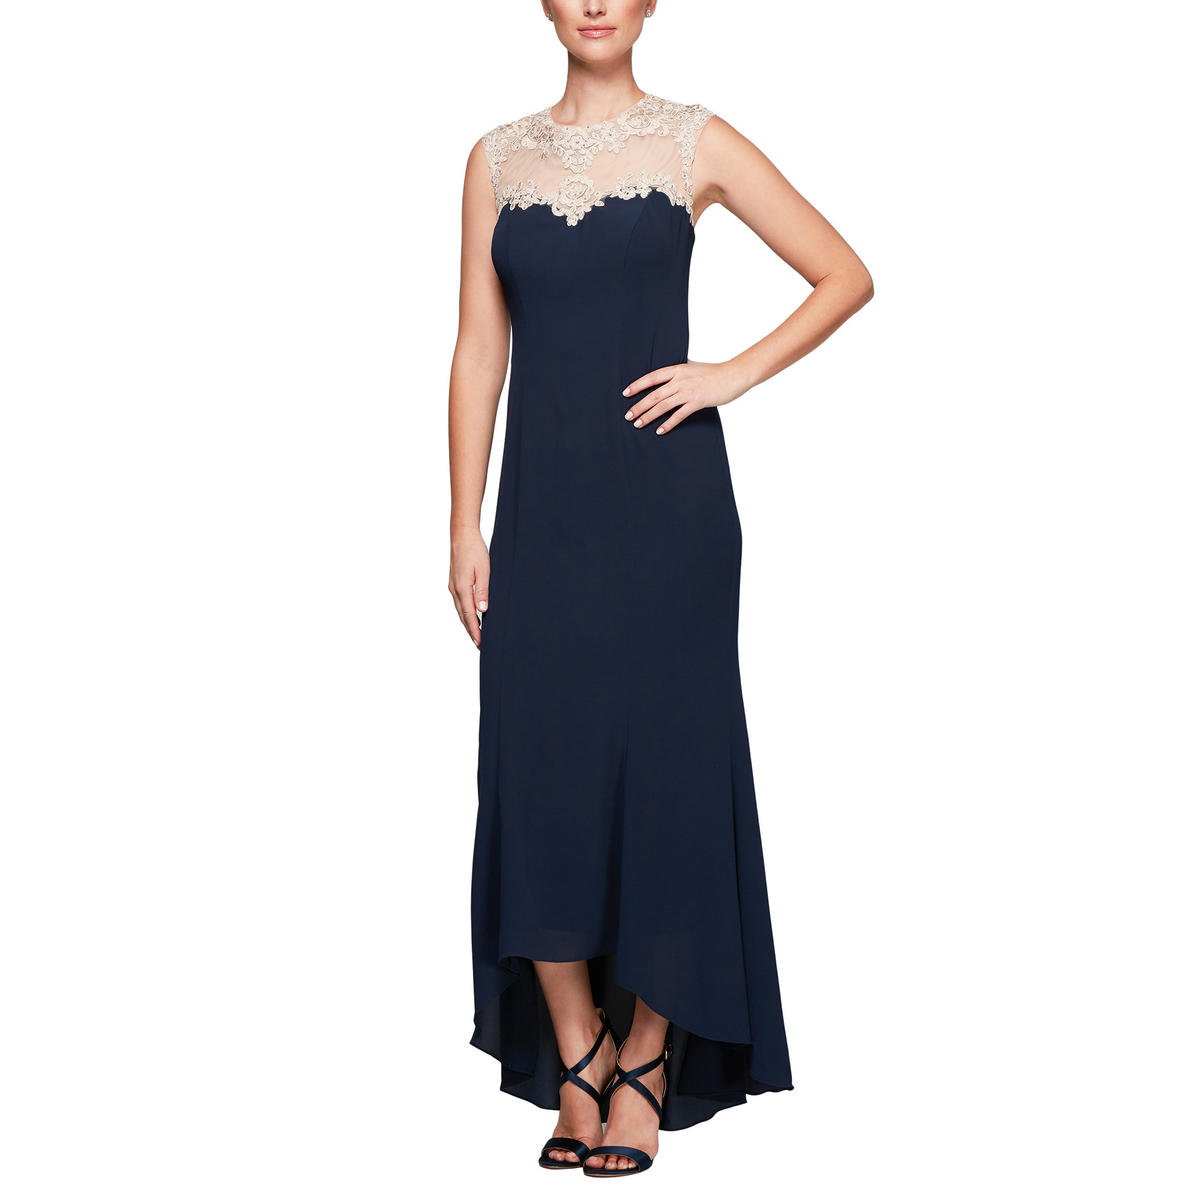 ALEX APPAREL GROUP INC - High-Low Illusion Crepe Gown